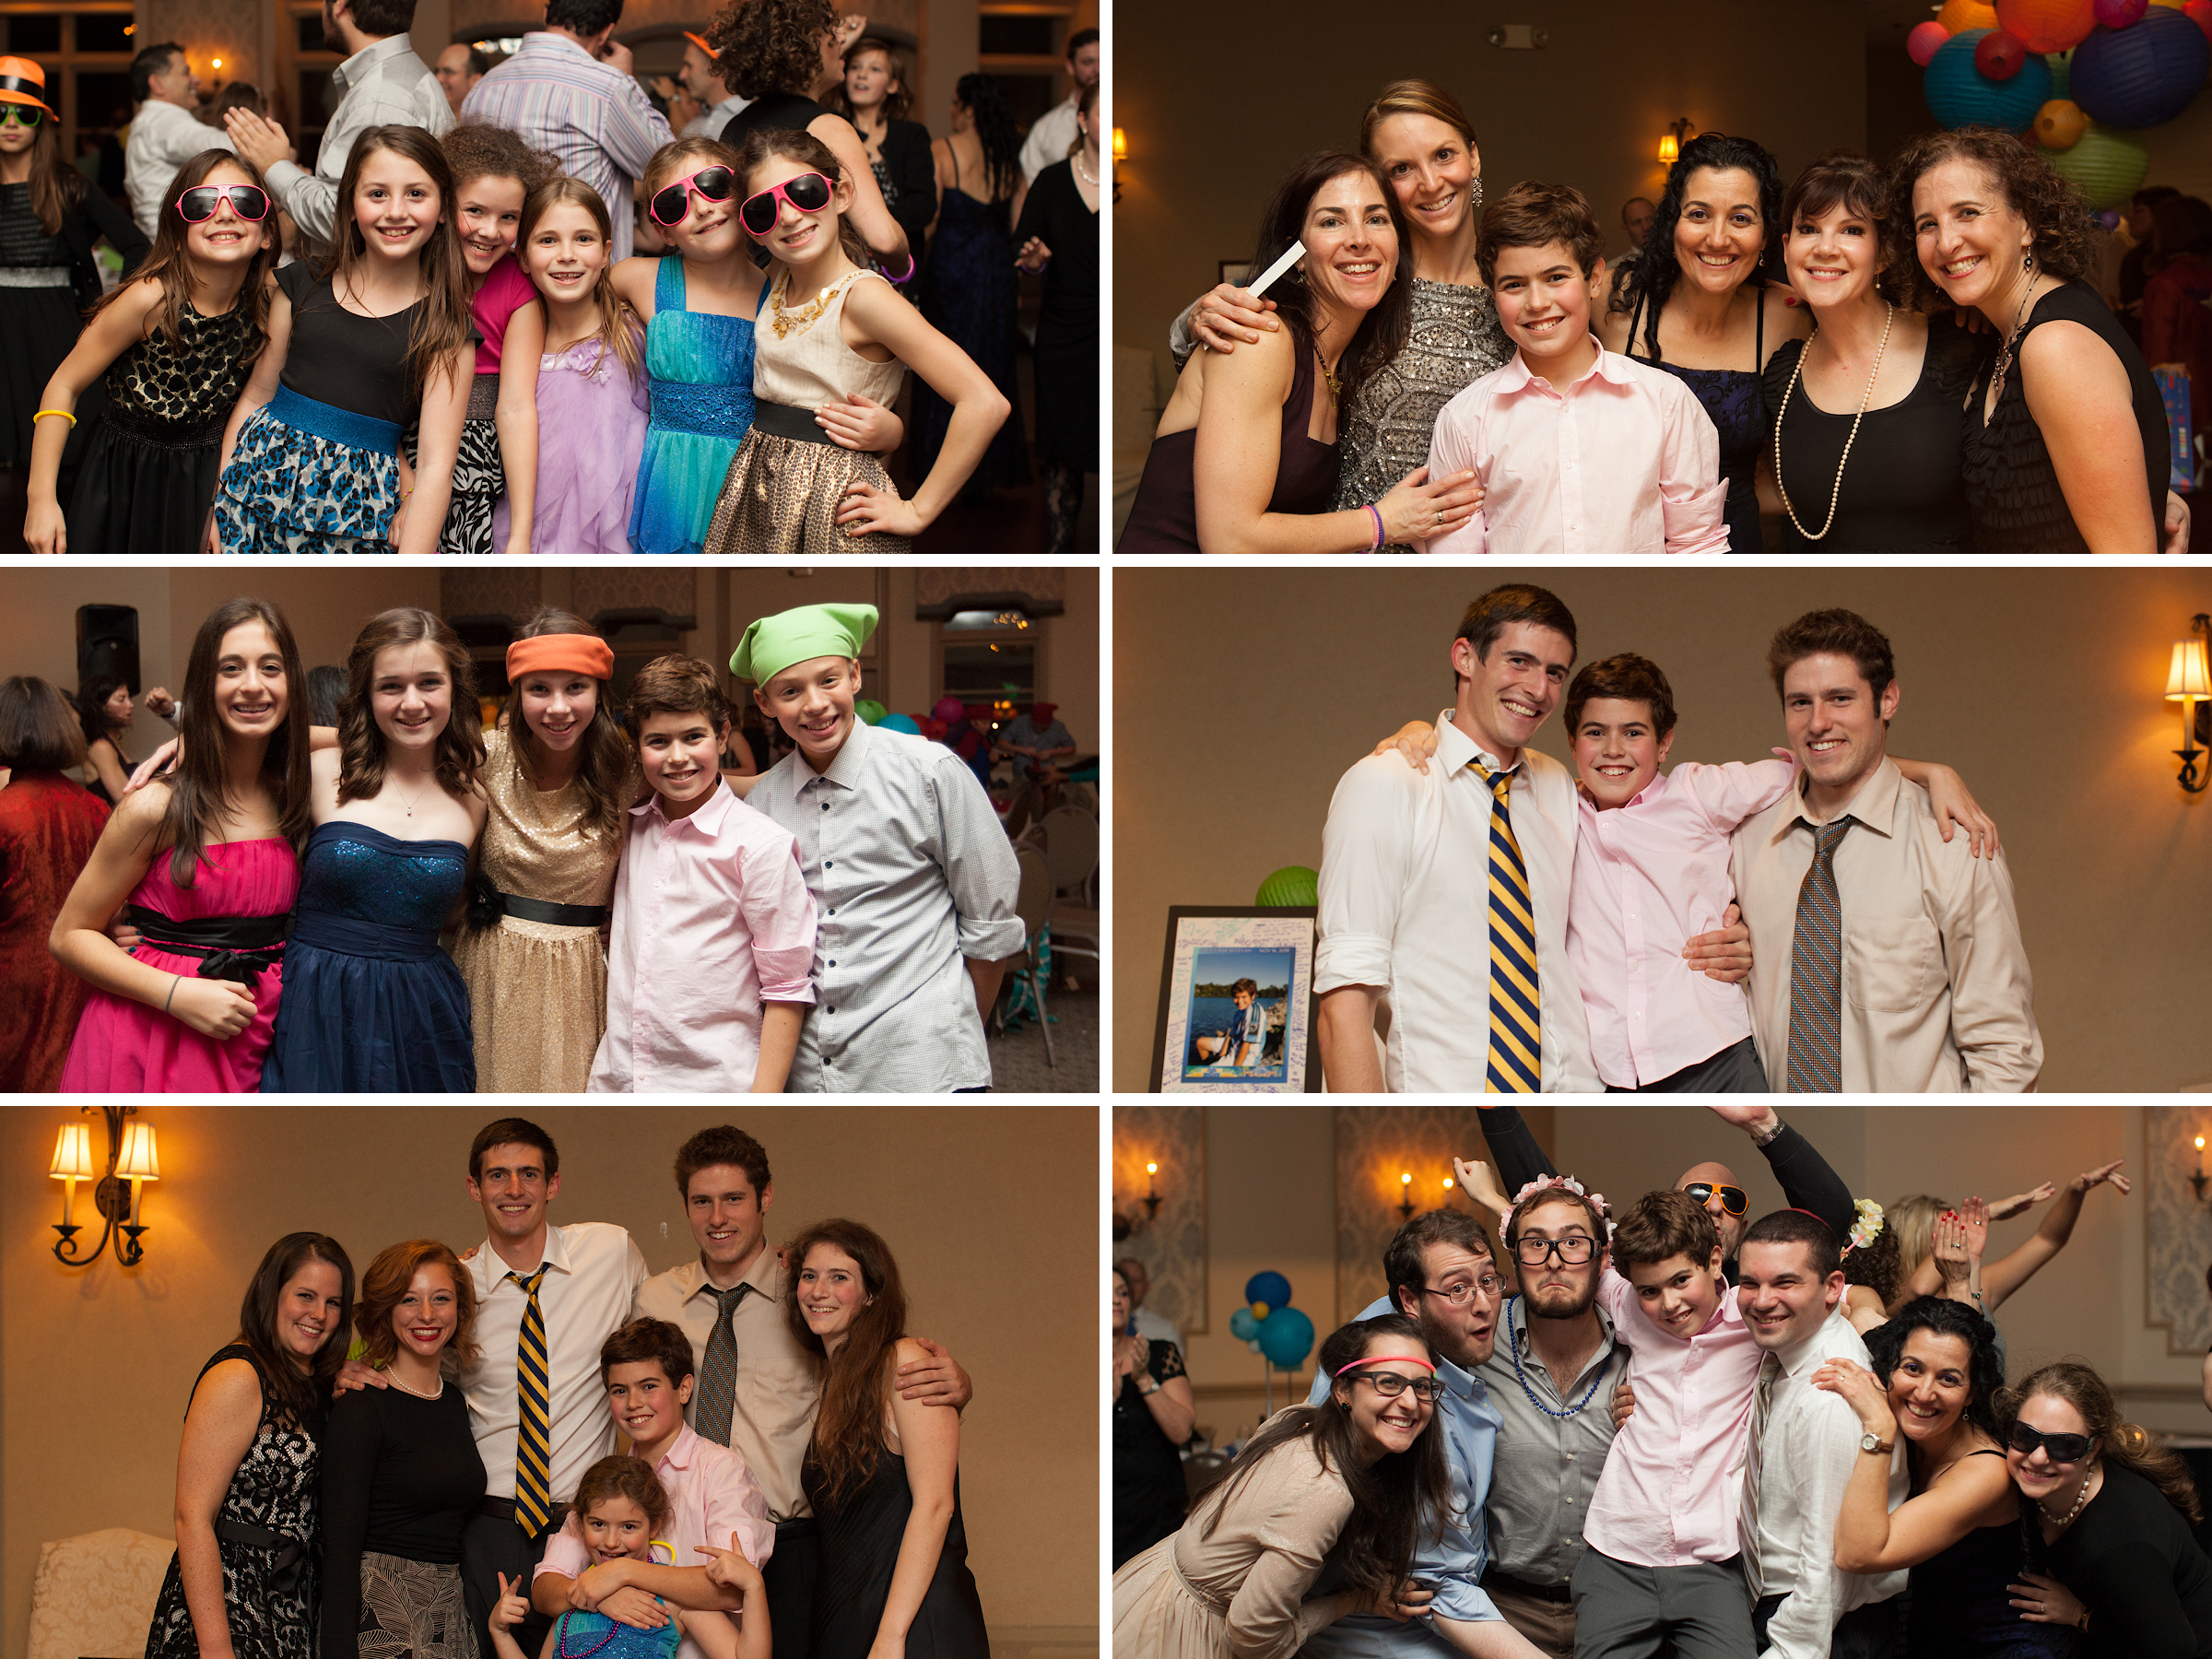 Zach_Bar_Mitzvah_Blog_09